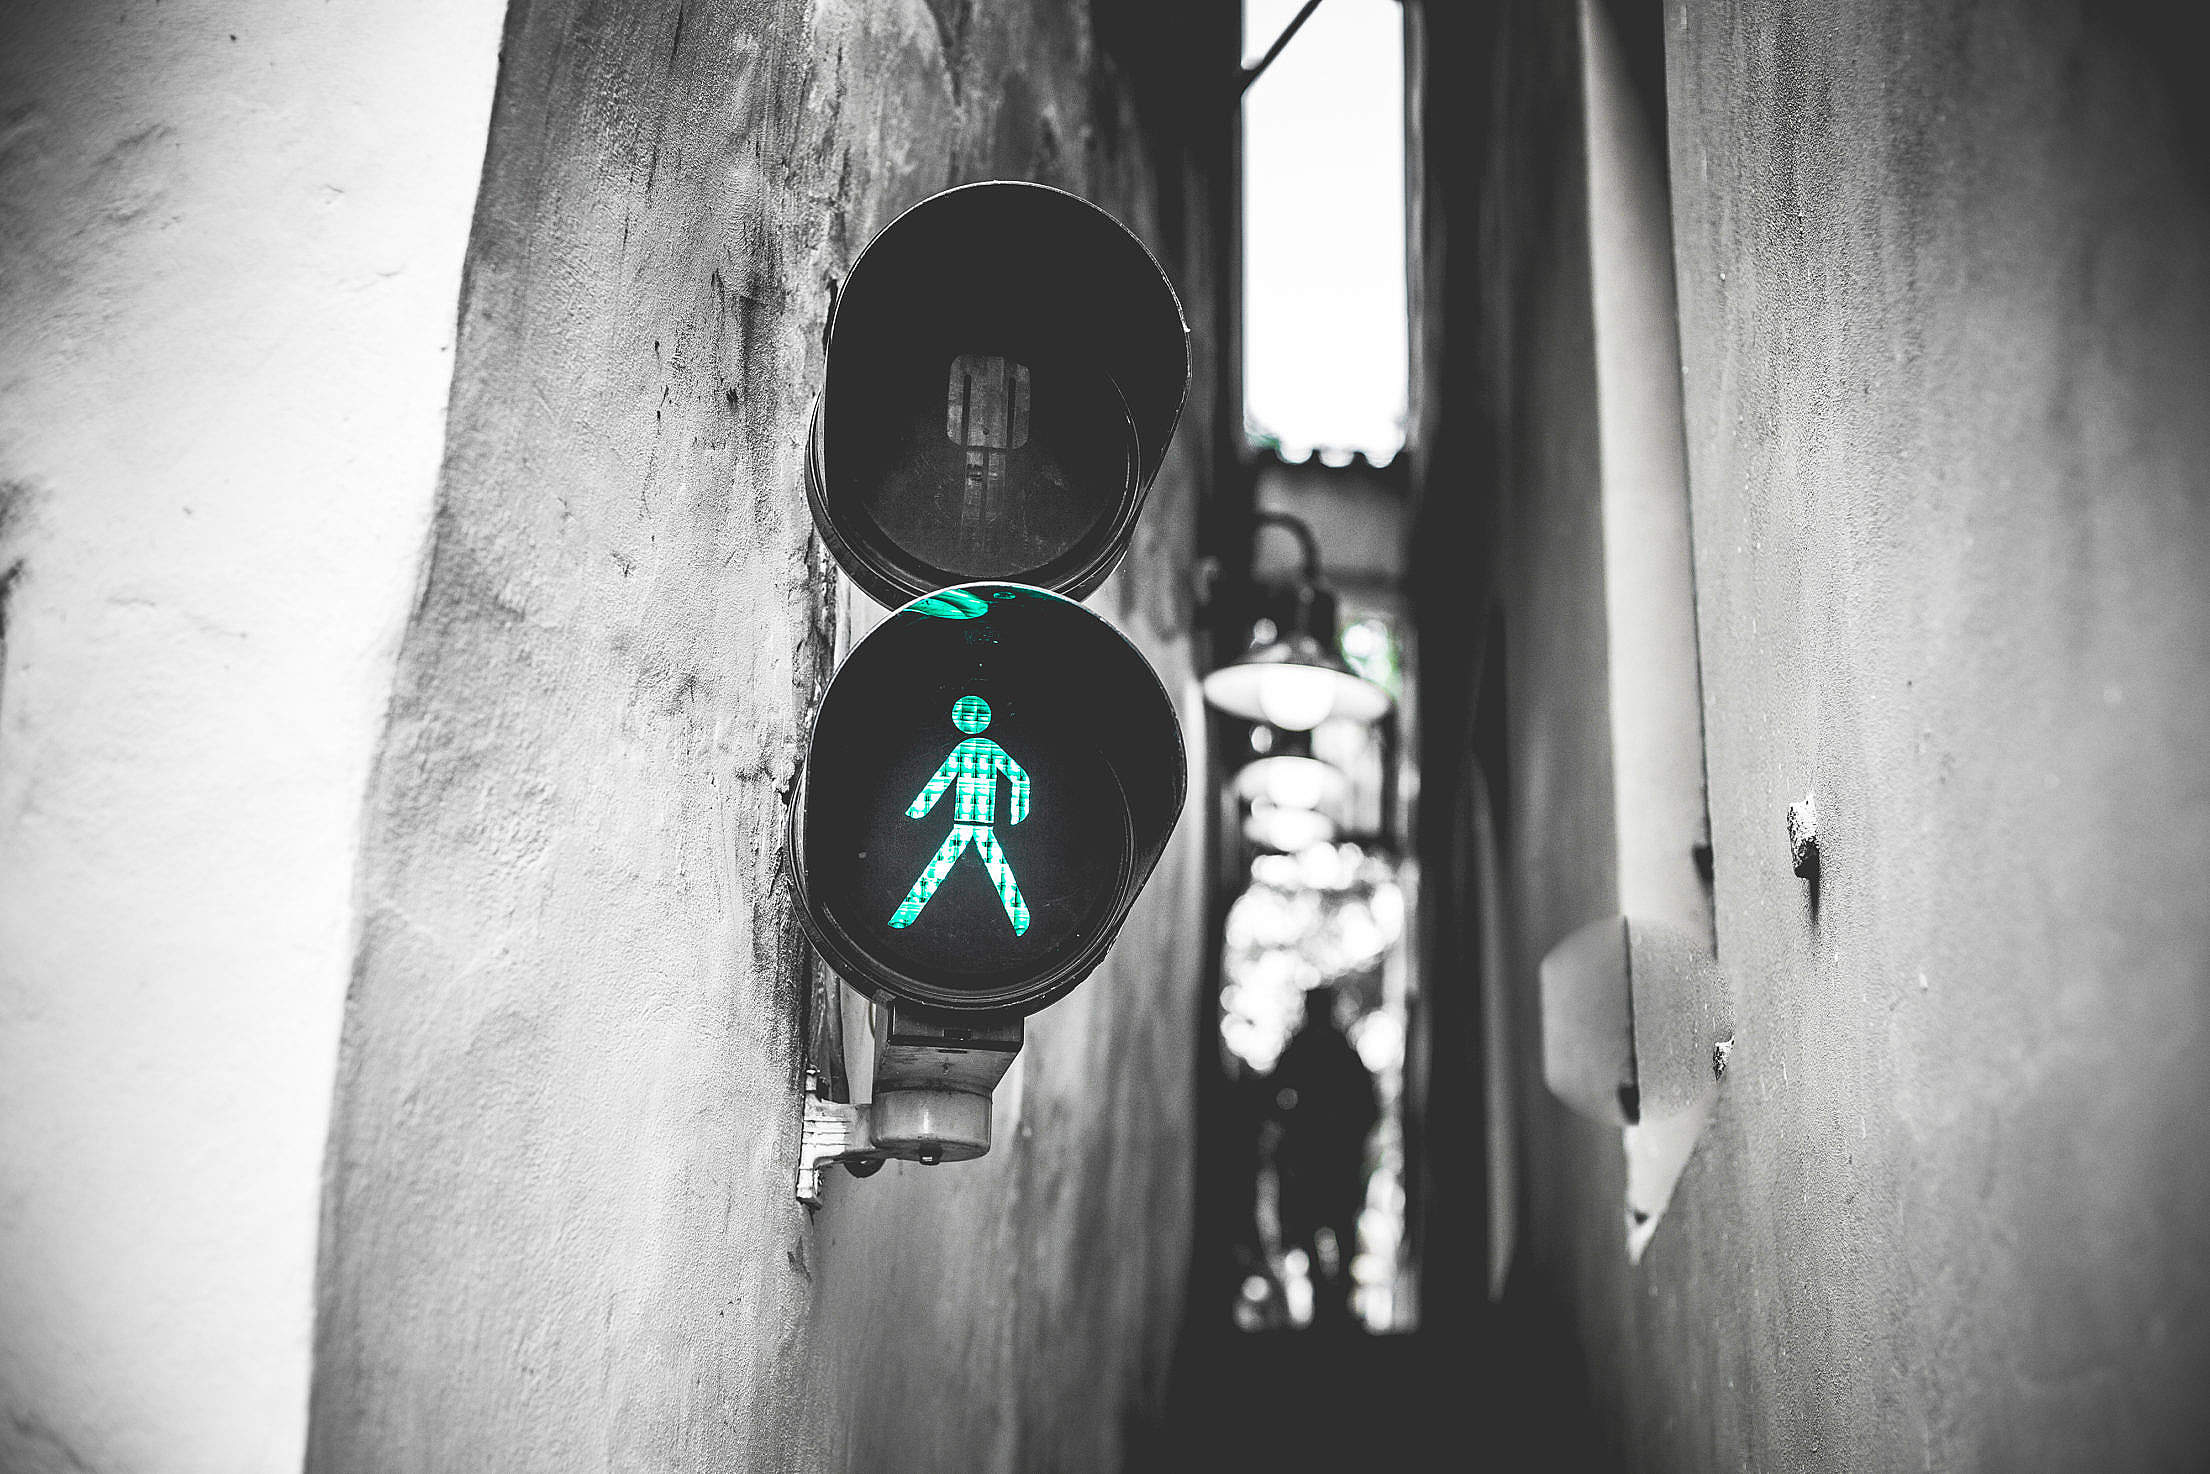 Green Traffic Light Walk Signal in Prague Narrowest Street Free Stock Photo